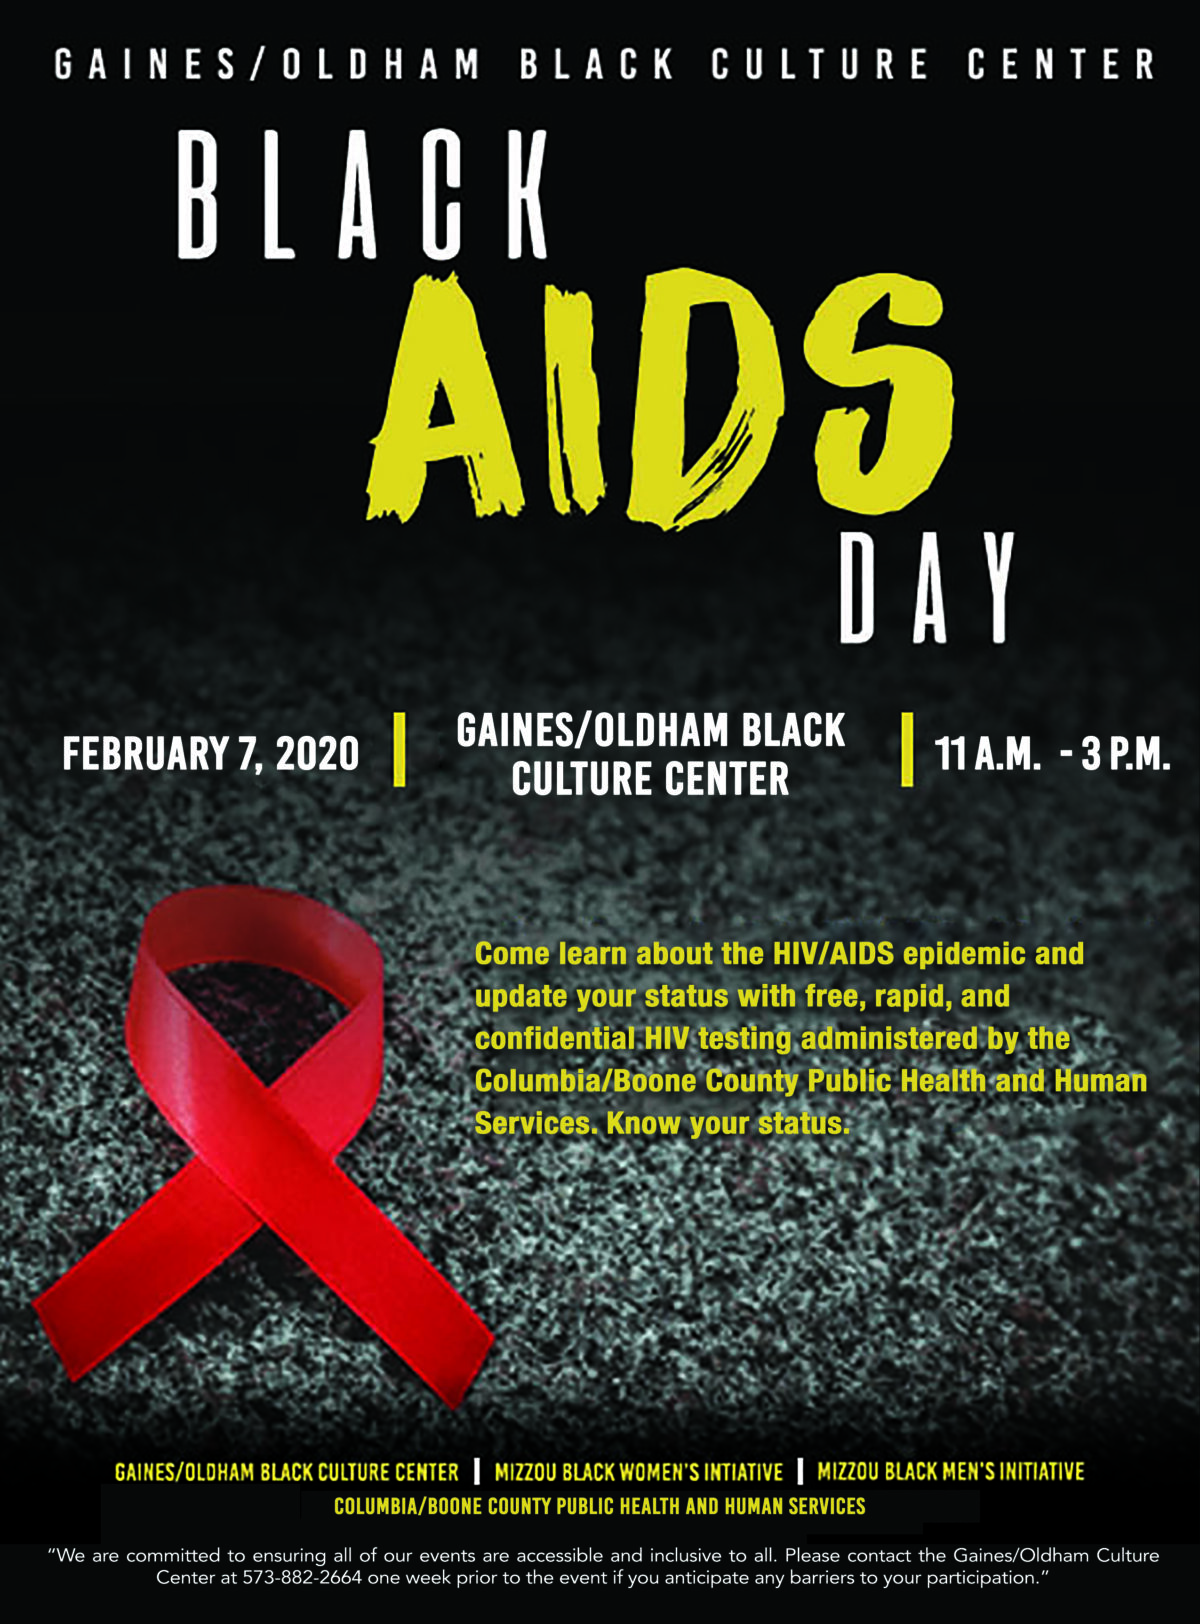 Flyer for Black AIDS Day: text on a black background with a red ribbon.